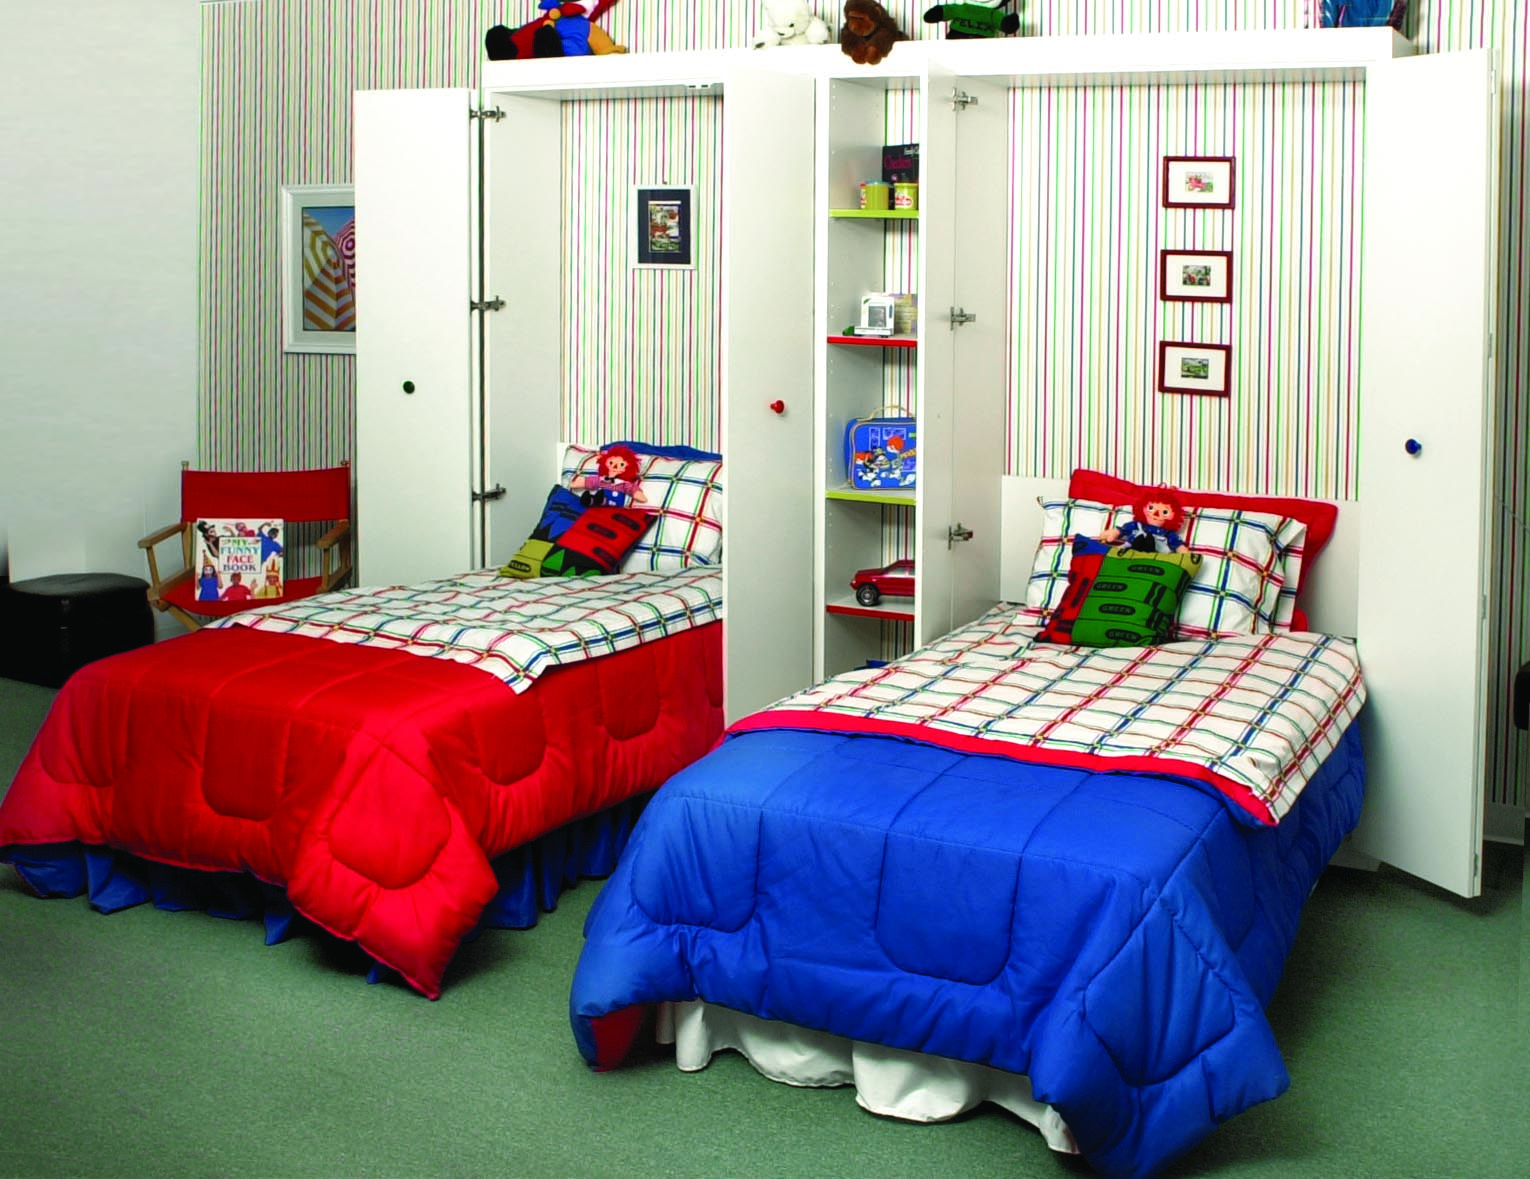 Space-Saving Kids Beds - Design Dazzle